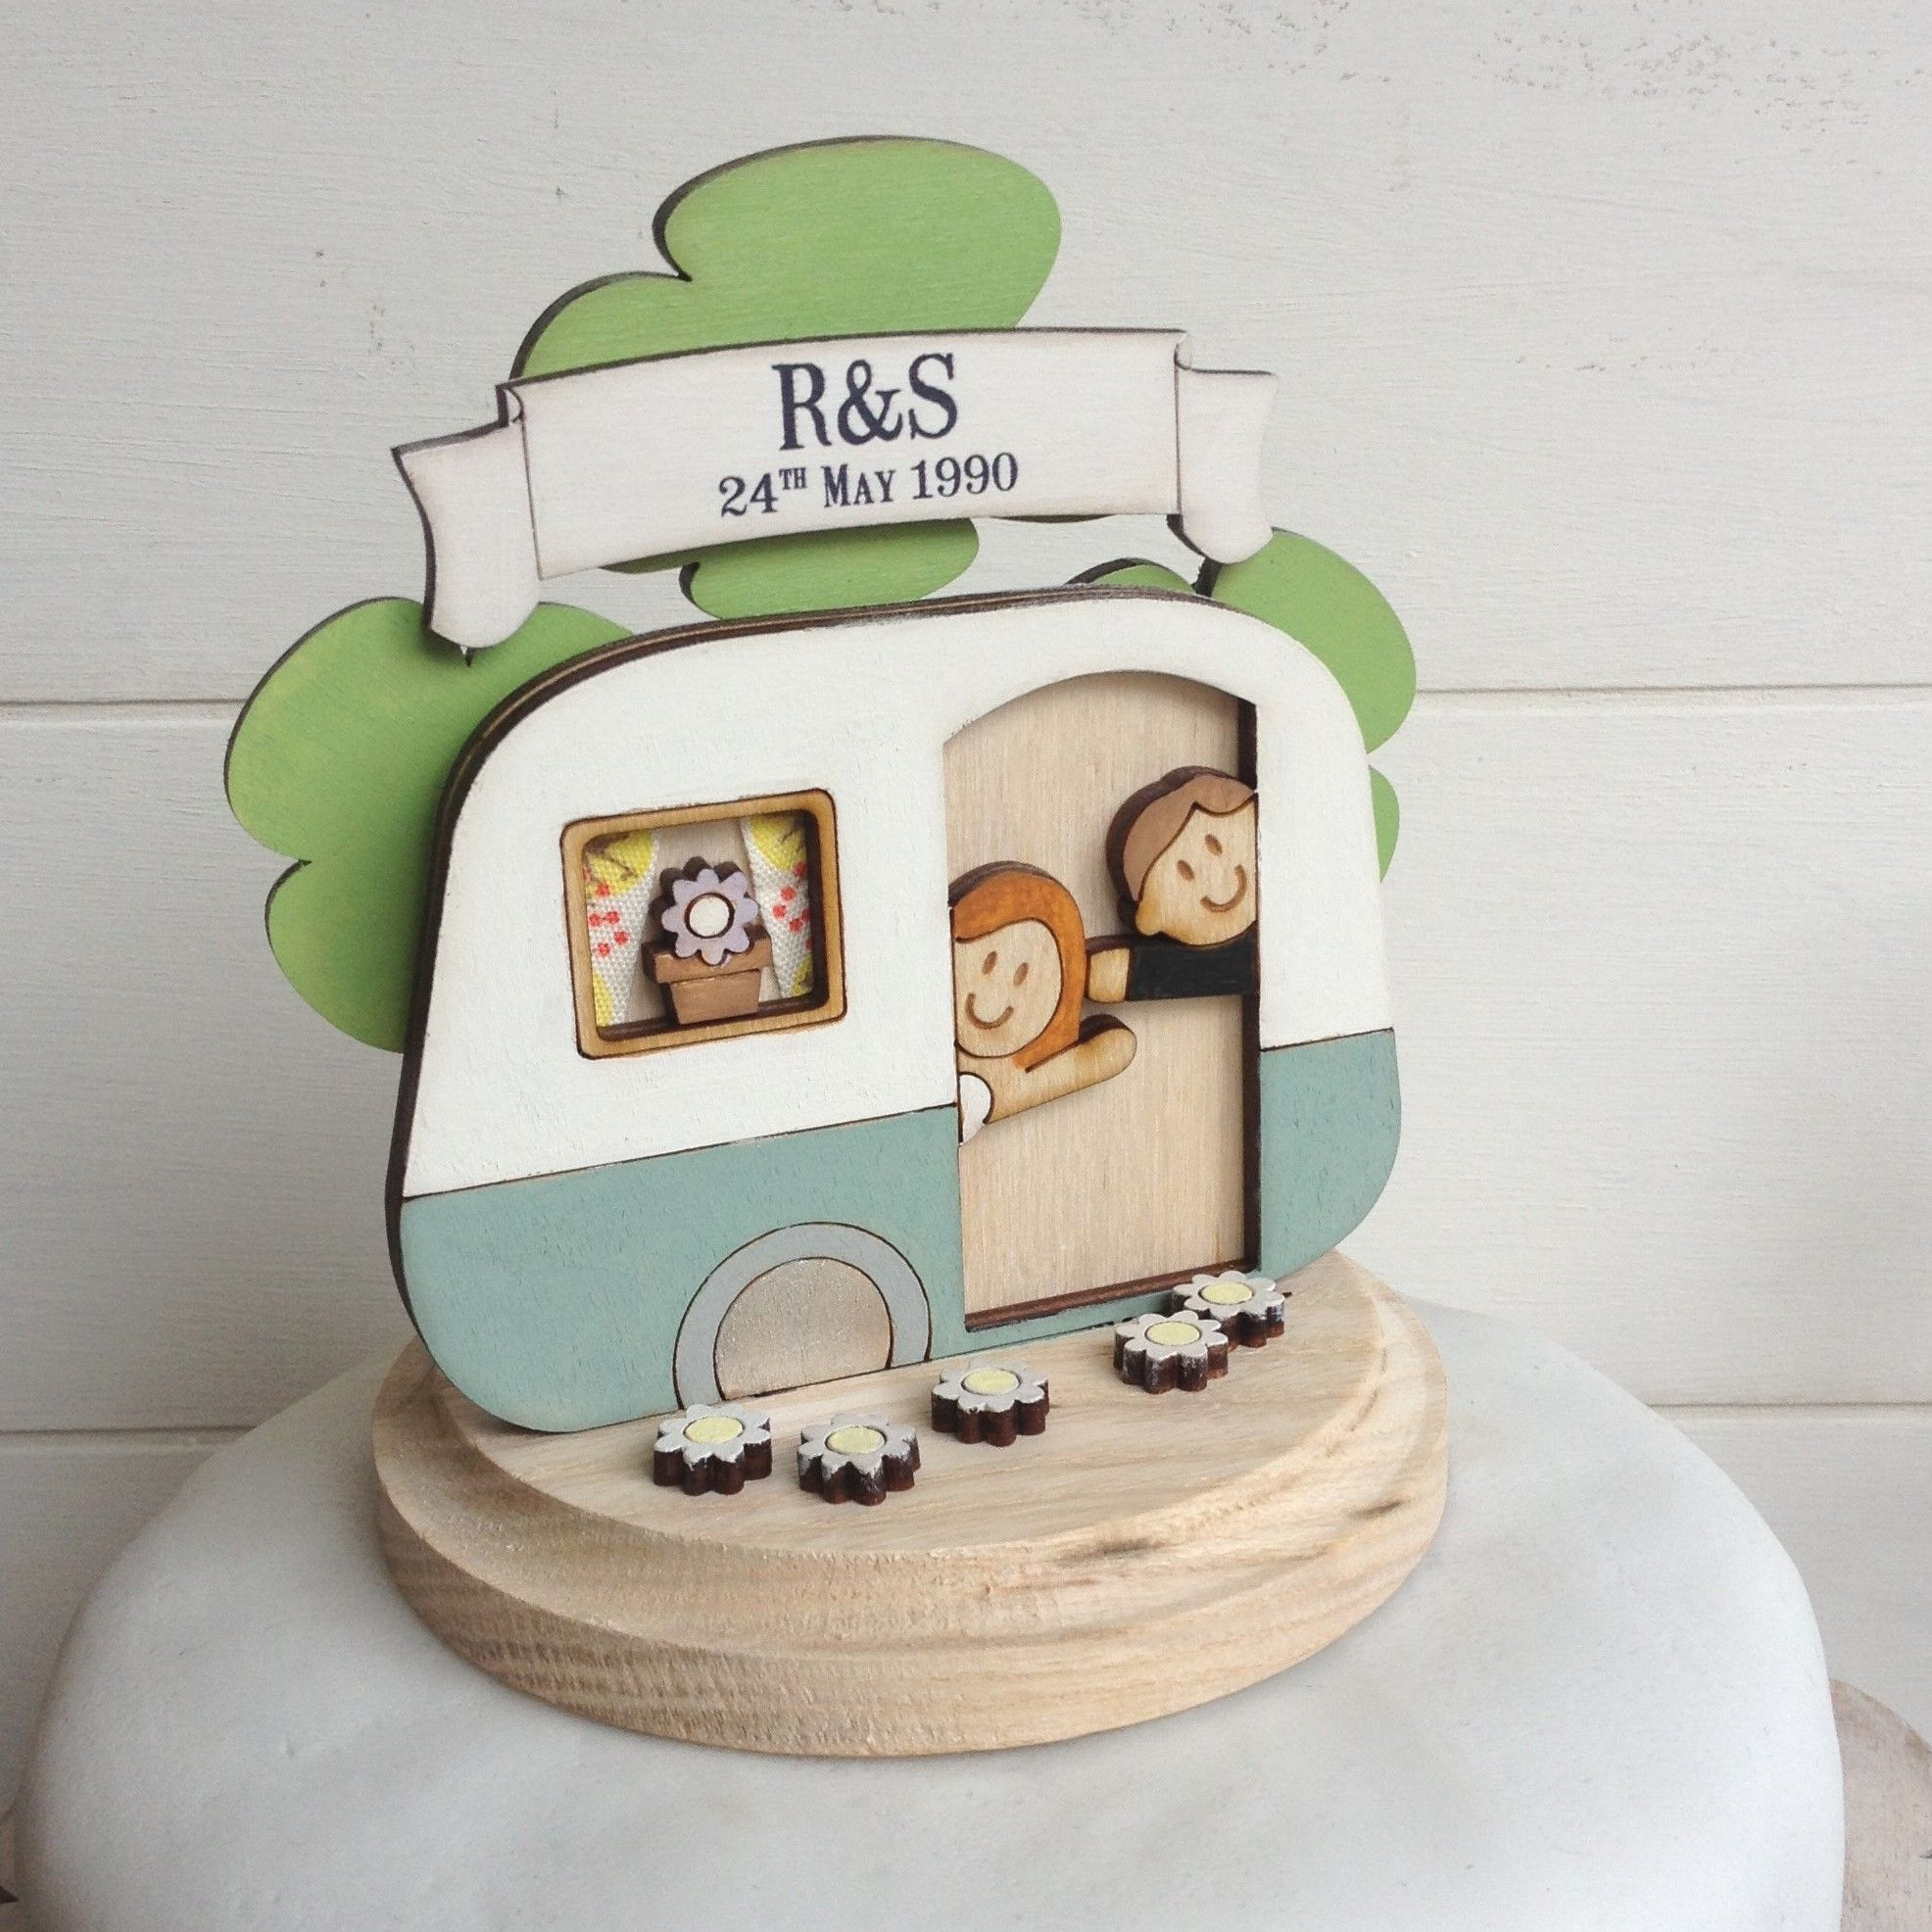 Vintage caravan wedding cake topper from www.justtoppers.co.uk ...